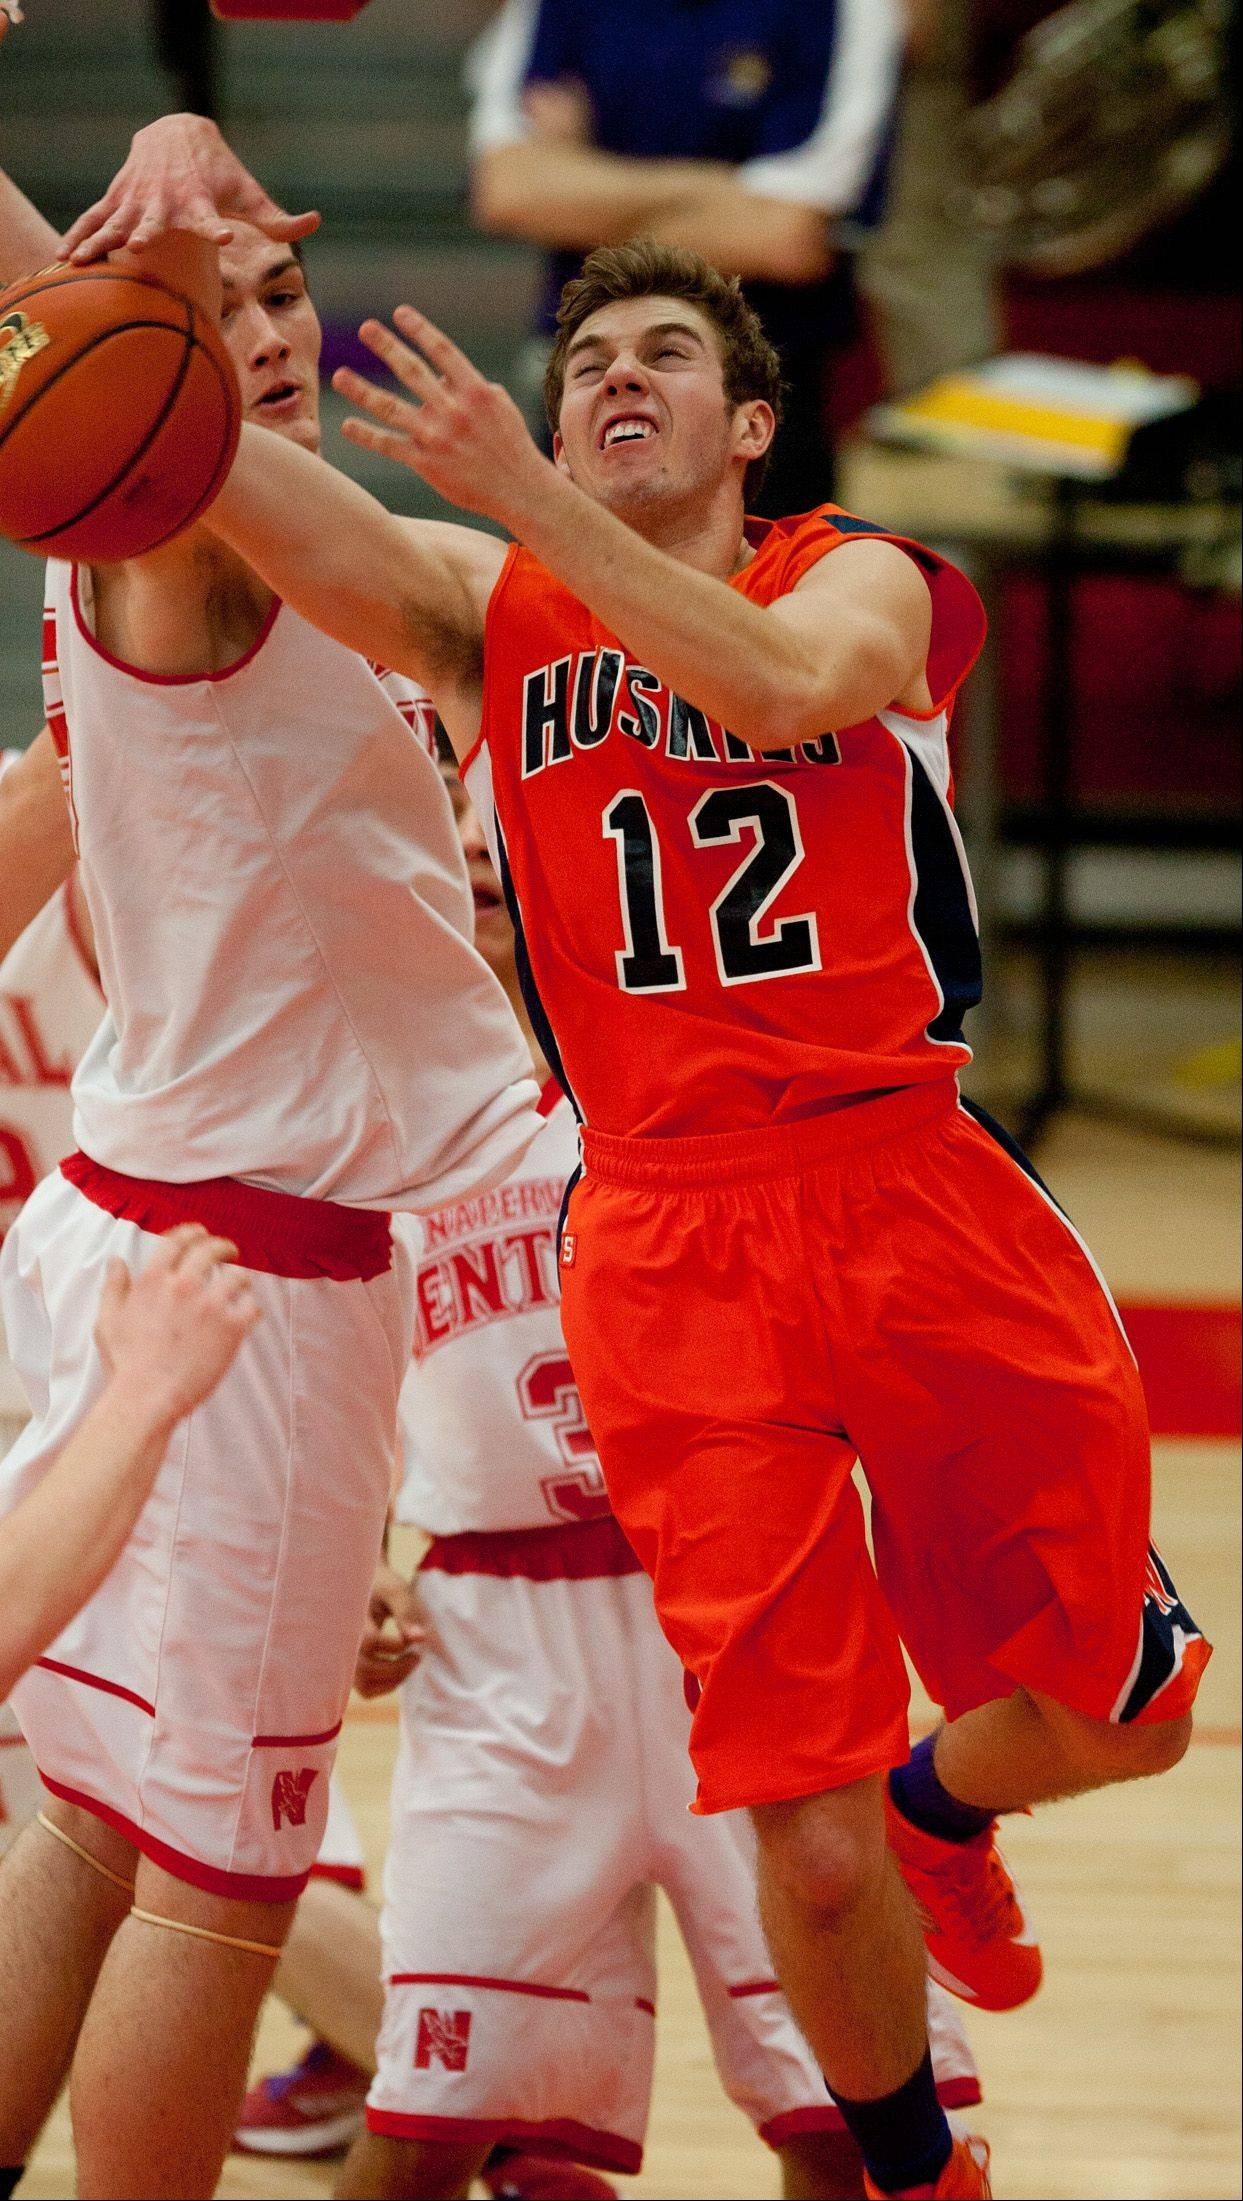 Naperville Central's Nick Czarnowski, left, defends Naperville North's Bryan LoLordo.